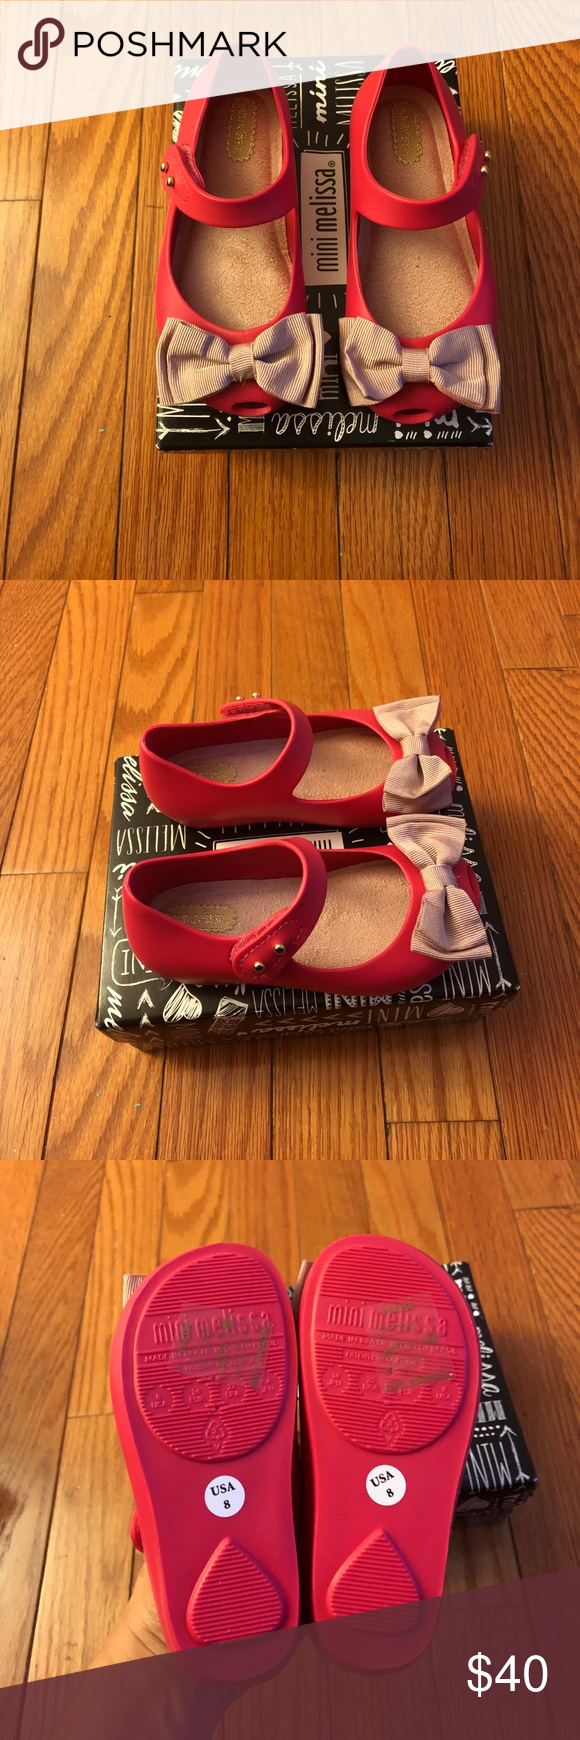 Hot pink dress shoes  Mini Melissa ribbon bow shoes New in box with dust bag for toddler